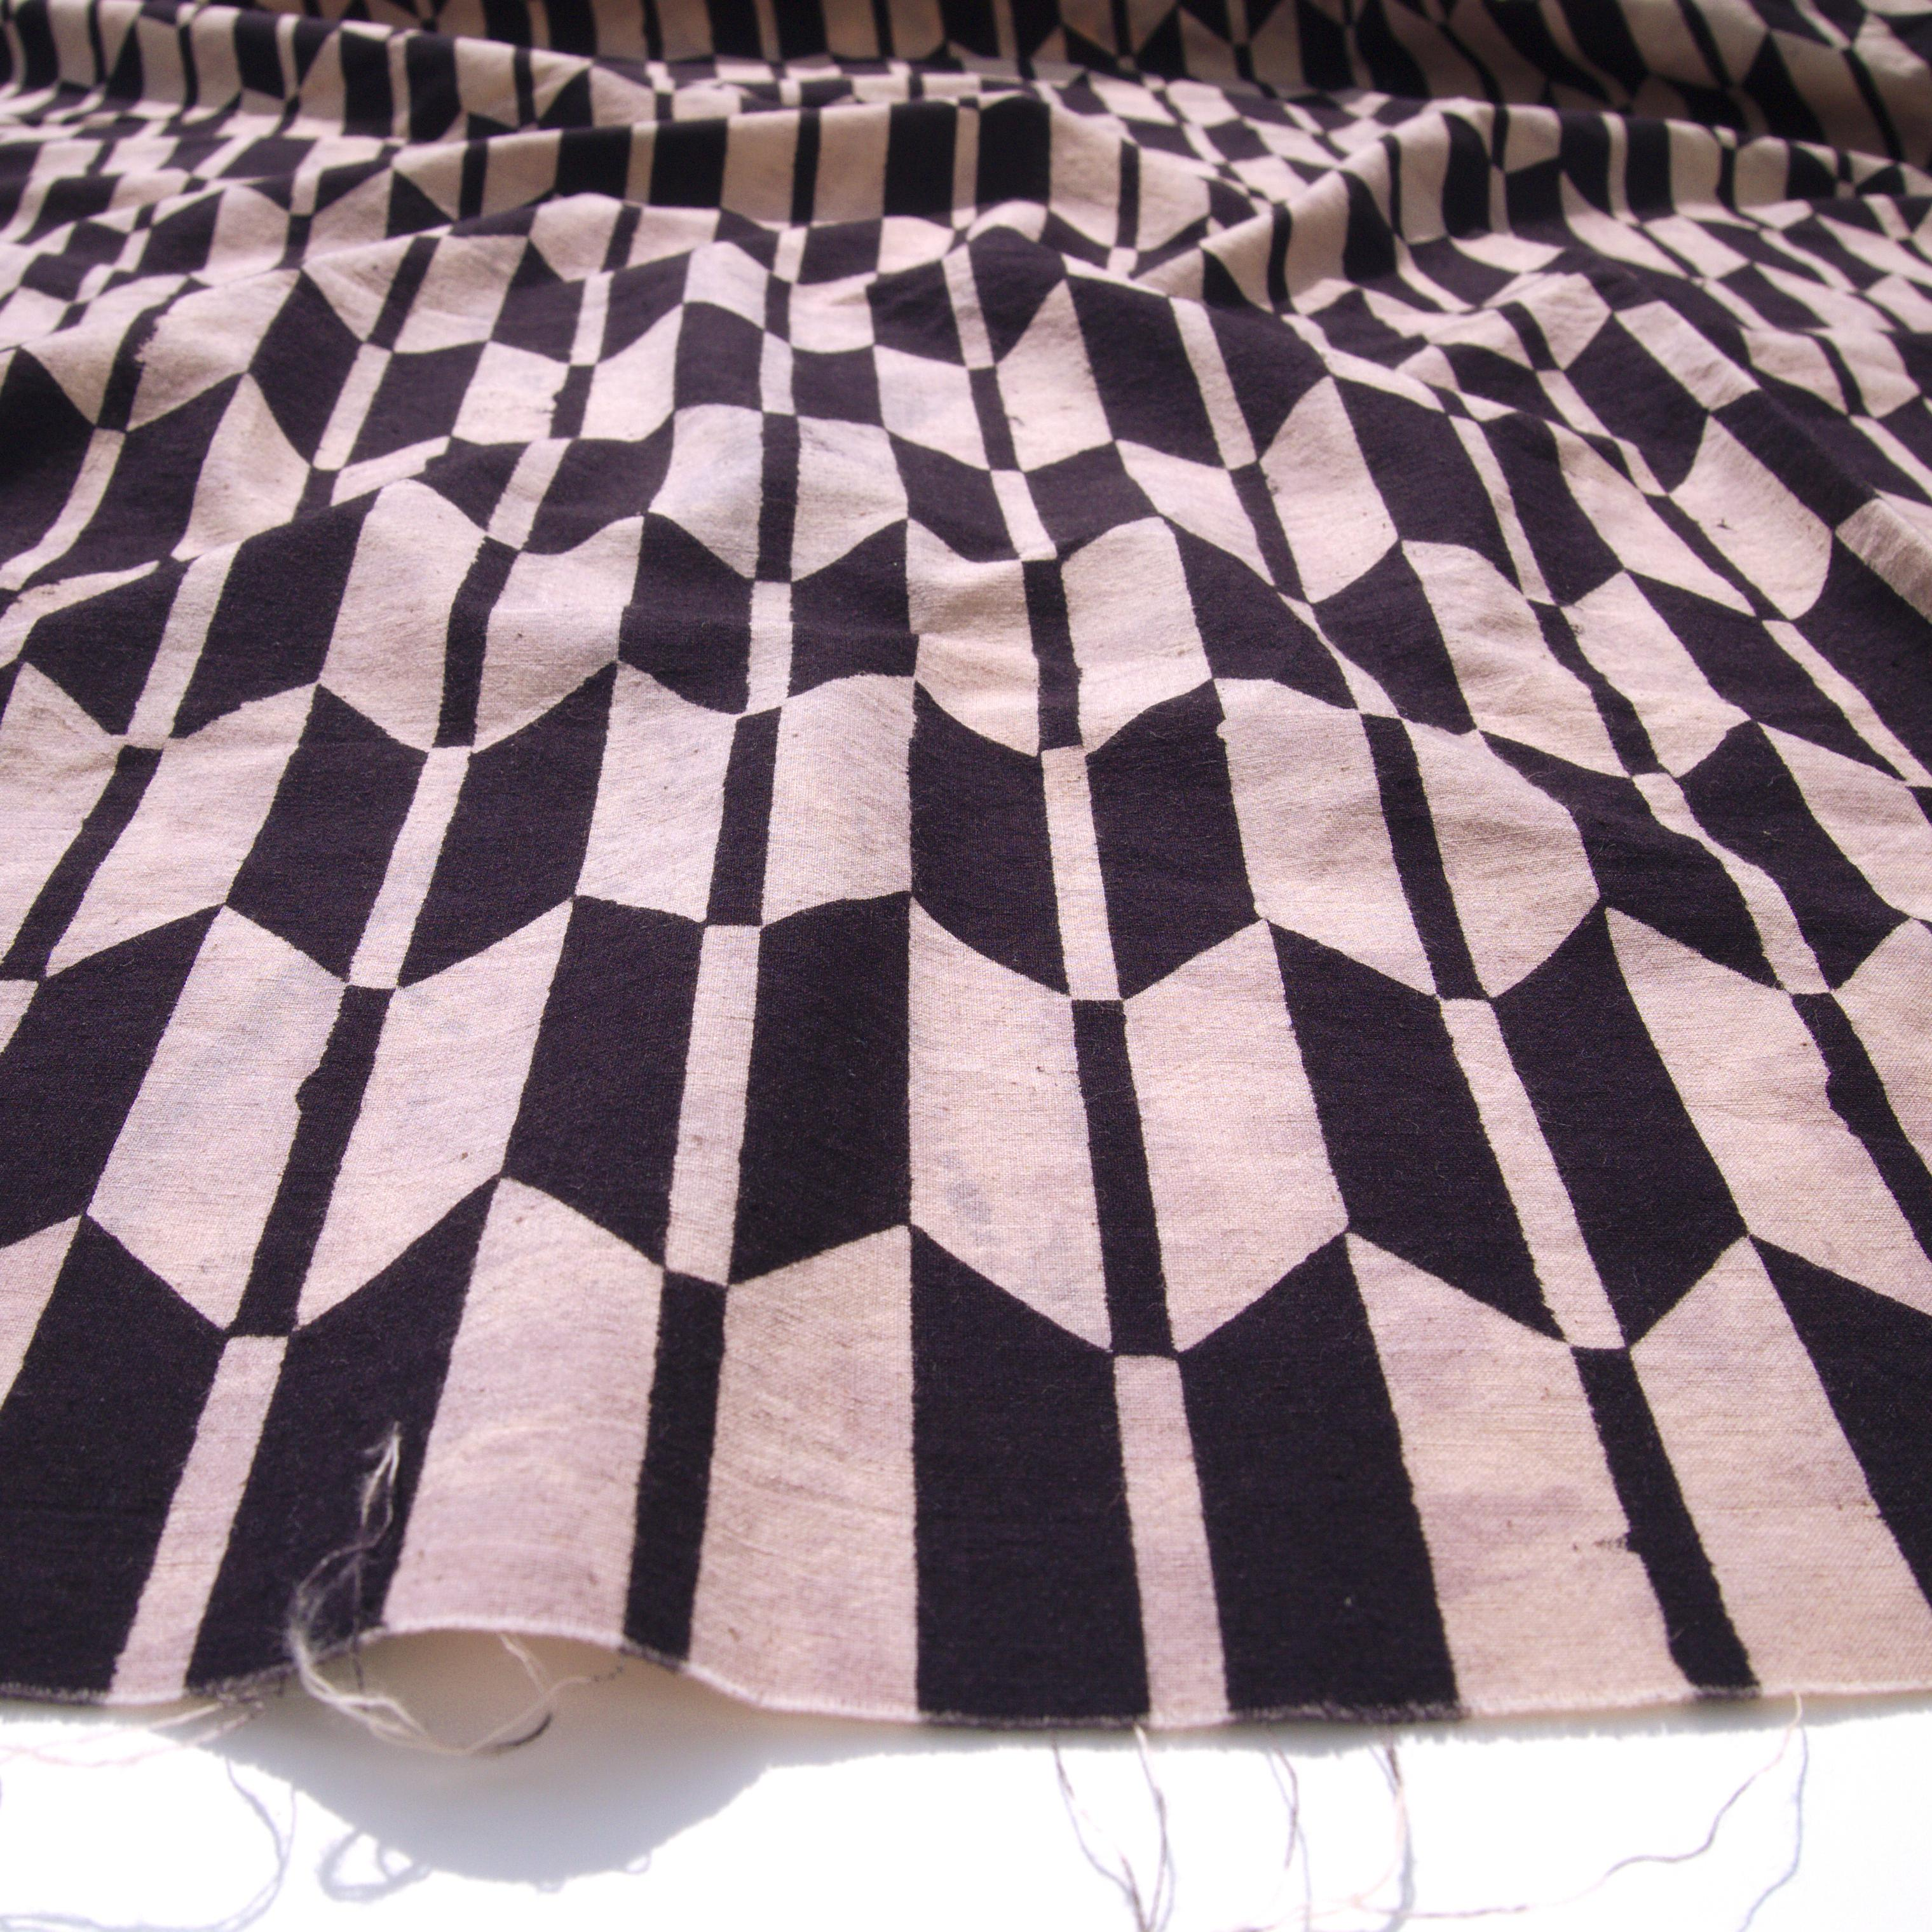 100% Block-Printed Cotton Fabric From India- Ajrak - Black White Resist Fletching Print - Angle